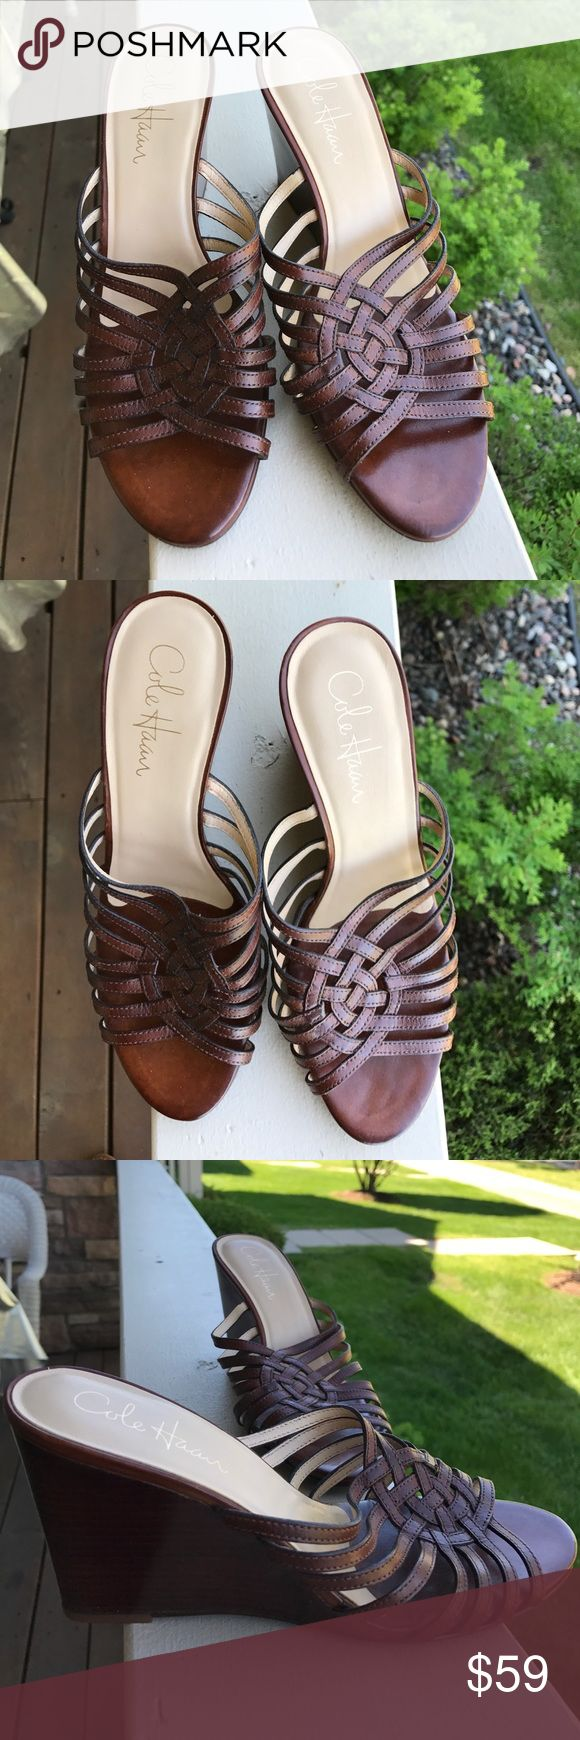 Cole Haan wedge sandals size 6.5 Very gently used. Super comfy Cole Haan wedge sandals. Cole Haan Shoes Wedges